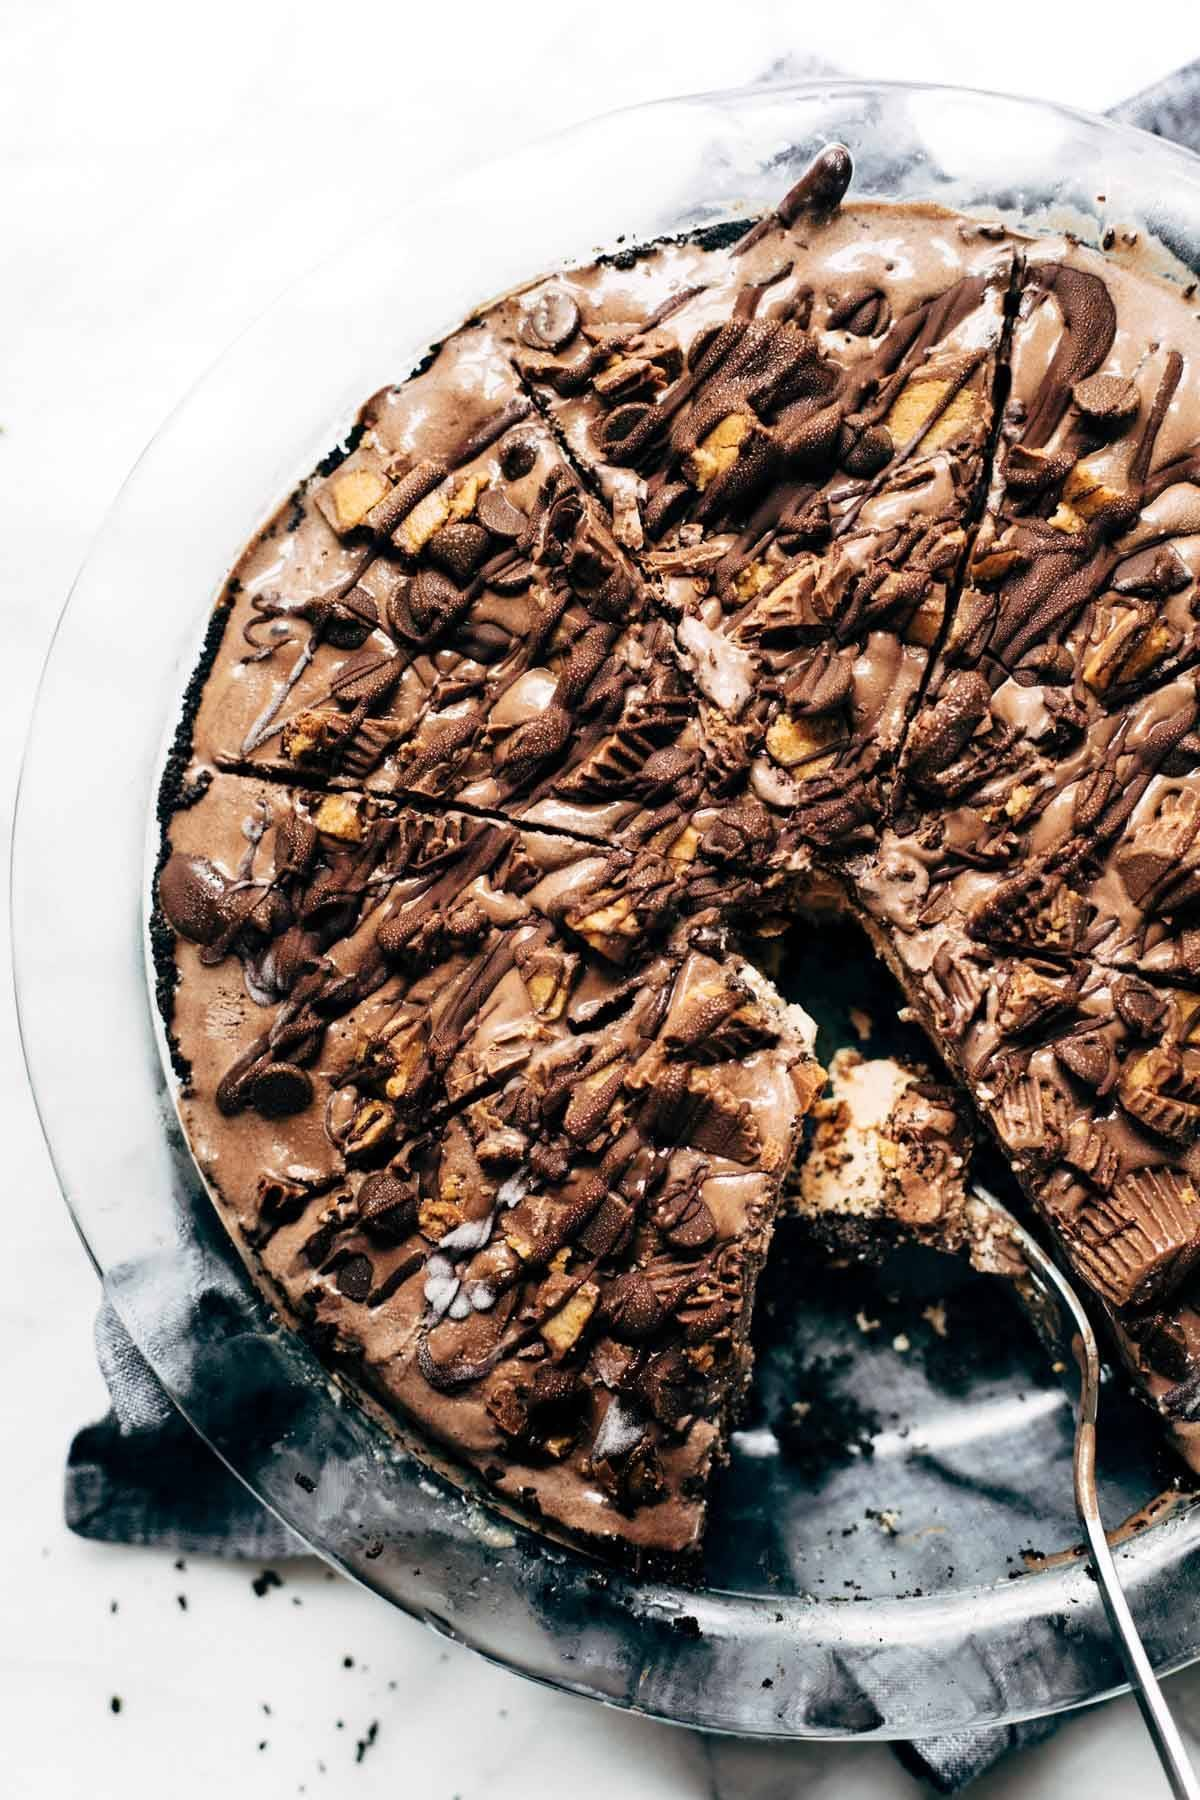 Mocha Peanut Butter Pie in a pie dish.